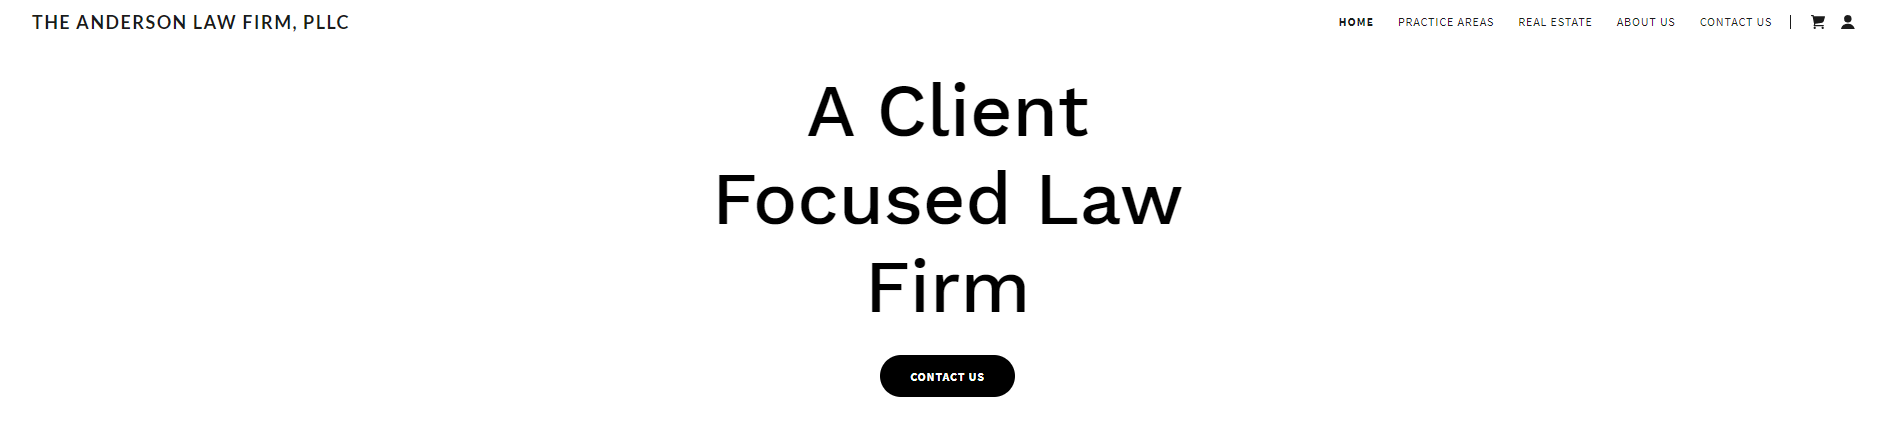 The Anderson Law Firm